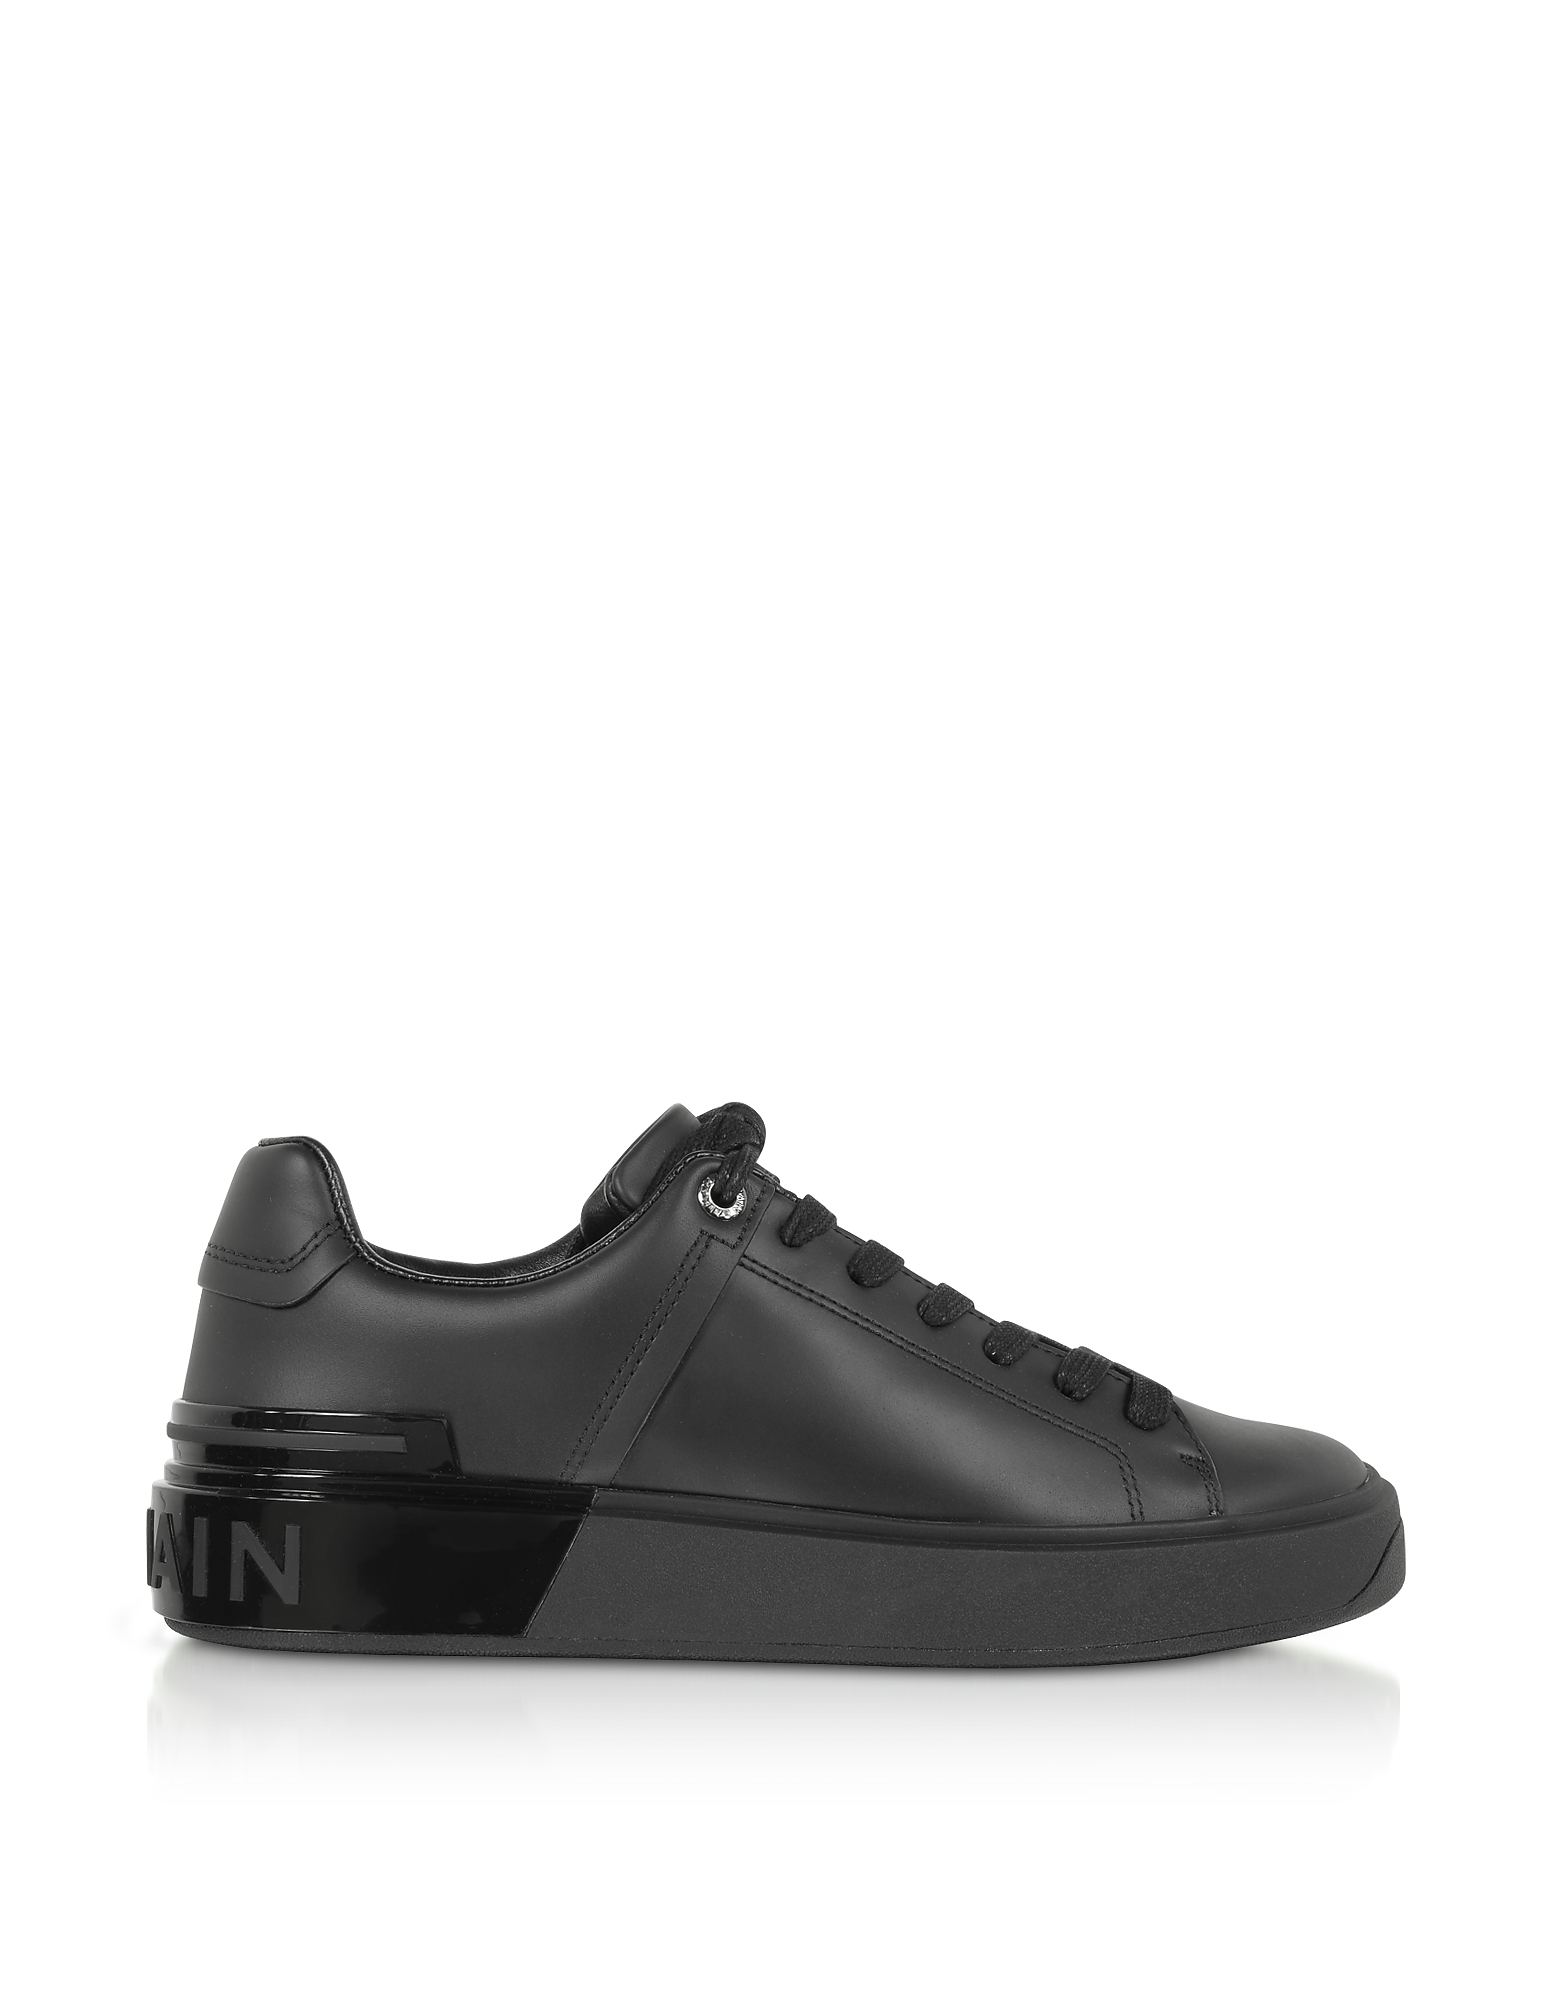 Balmain Designer Shoes, Black Leather Lace up Women's Sneakers